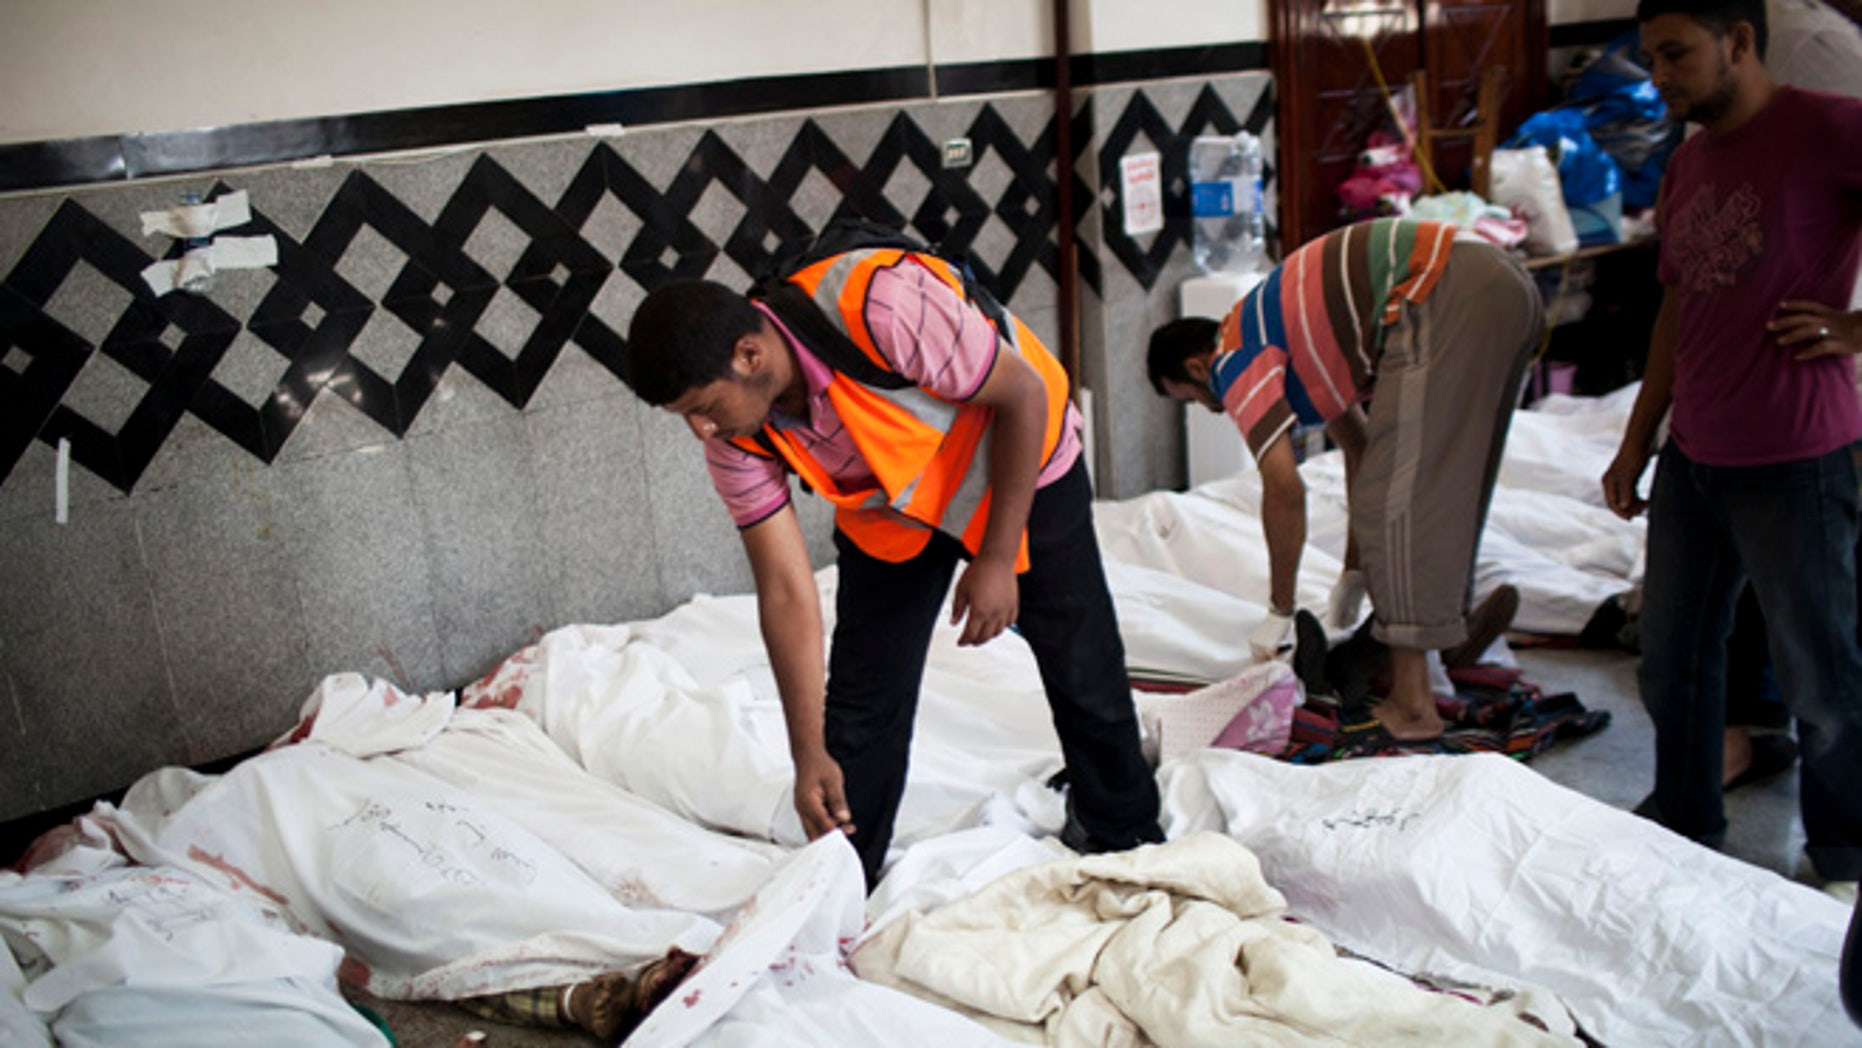 July 27, 2013: An Egyptian doctor identifies the body of a supporter of Egypt's ousted President Mohammed Morsi killed in clashes with security forces at Nasr City, where pro-Morsi protesters have held a weeks-long sit-in, in a field hospital in Cairo, Egypt.